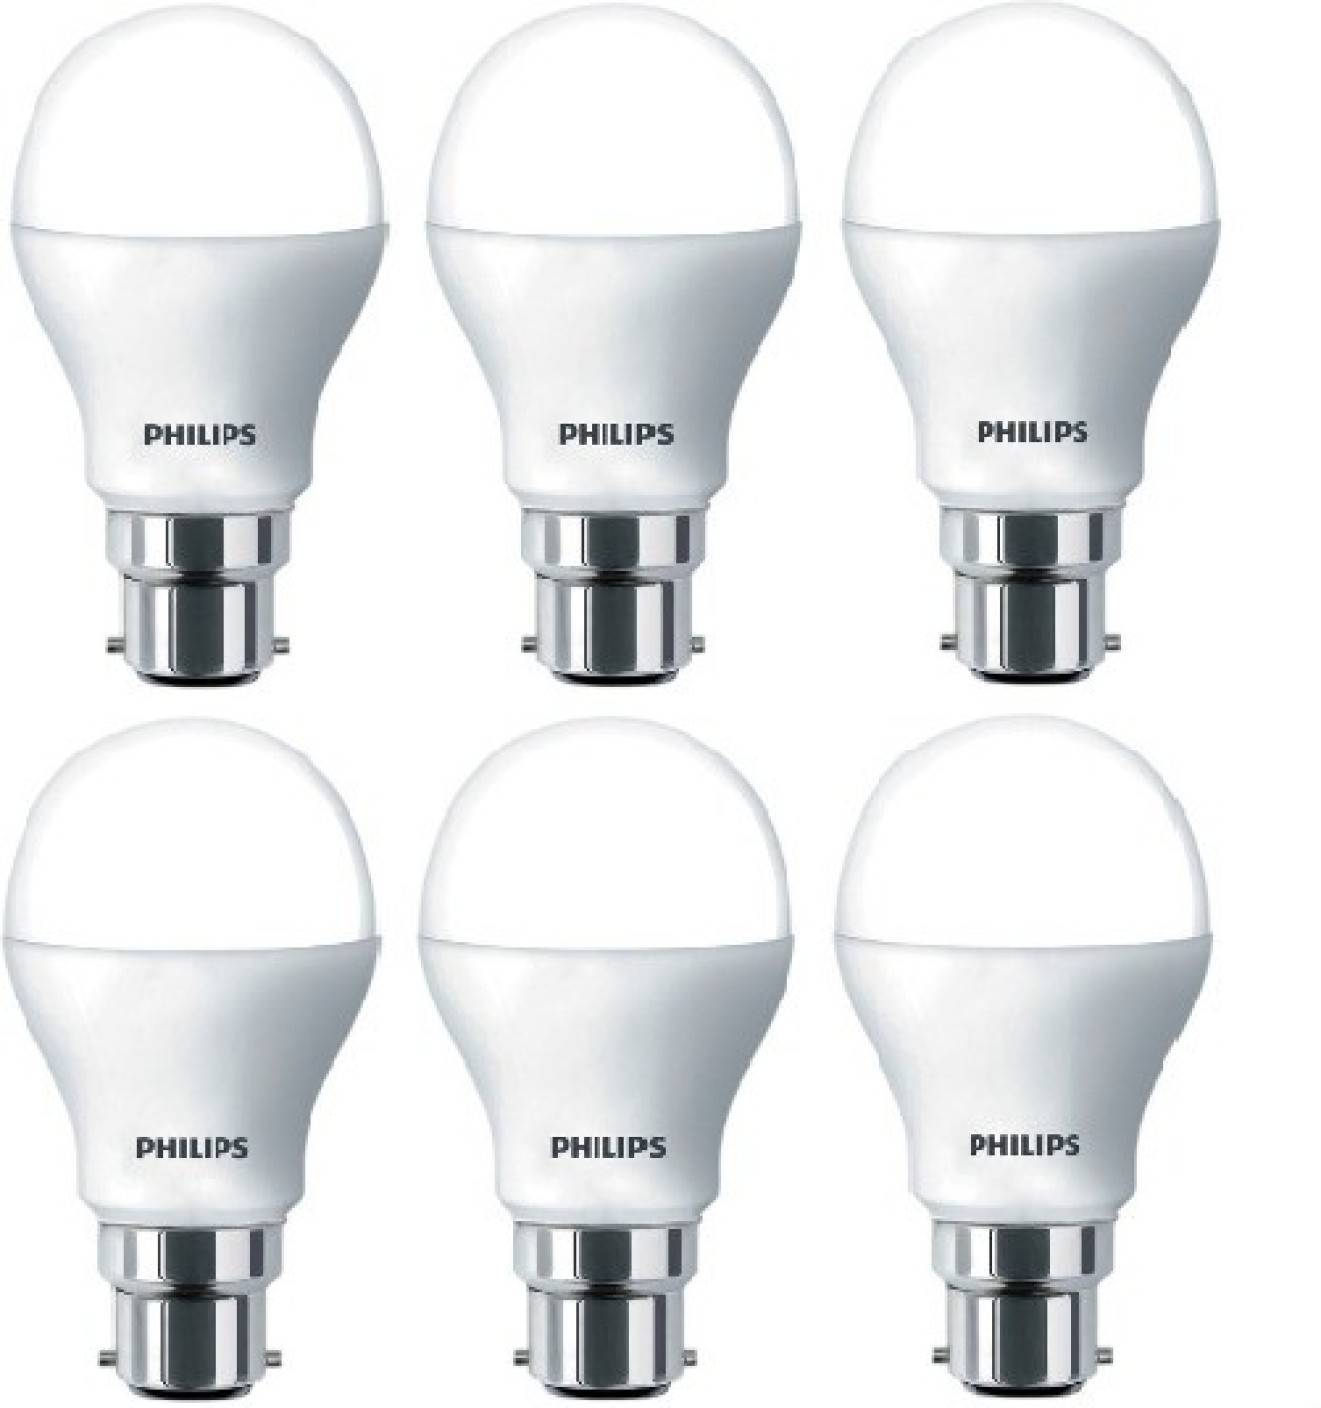 Philips 9 W B22 Led Bulb Price In India Buy Philips 9 W